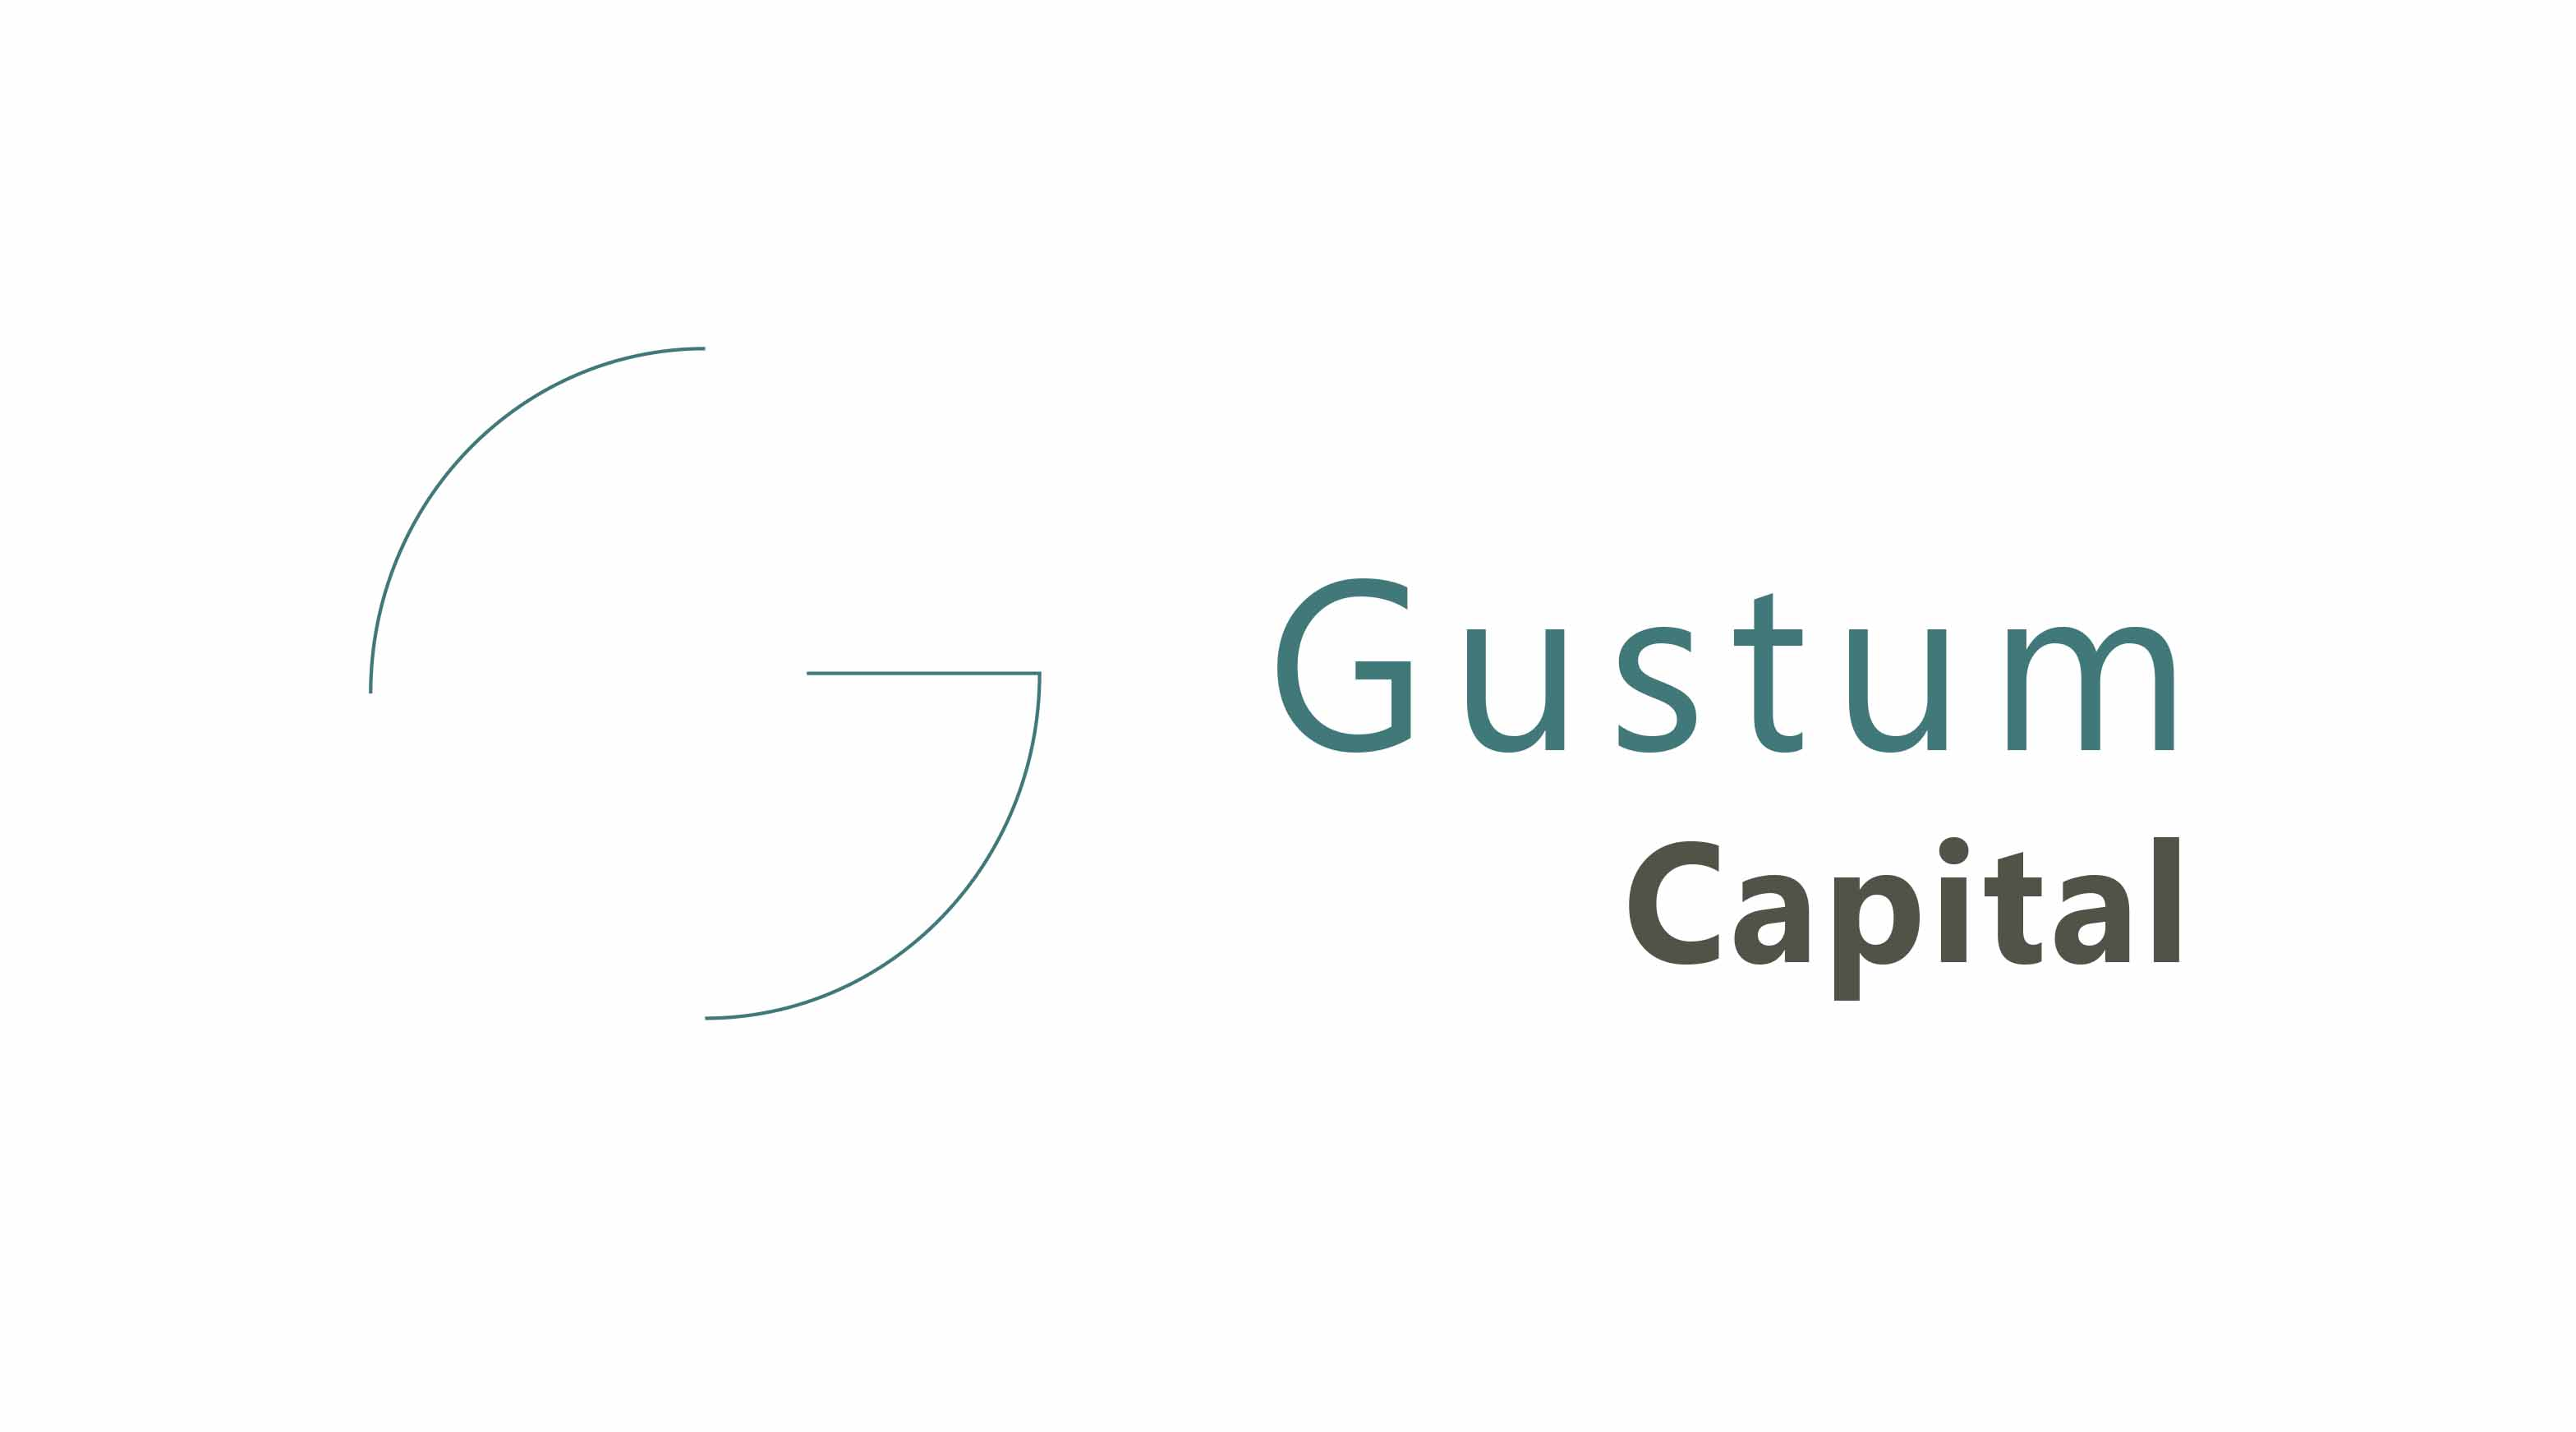 Gustum Capital